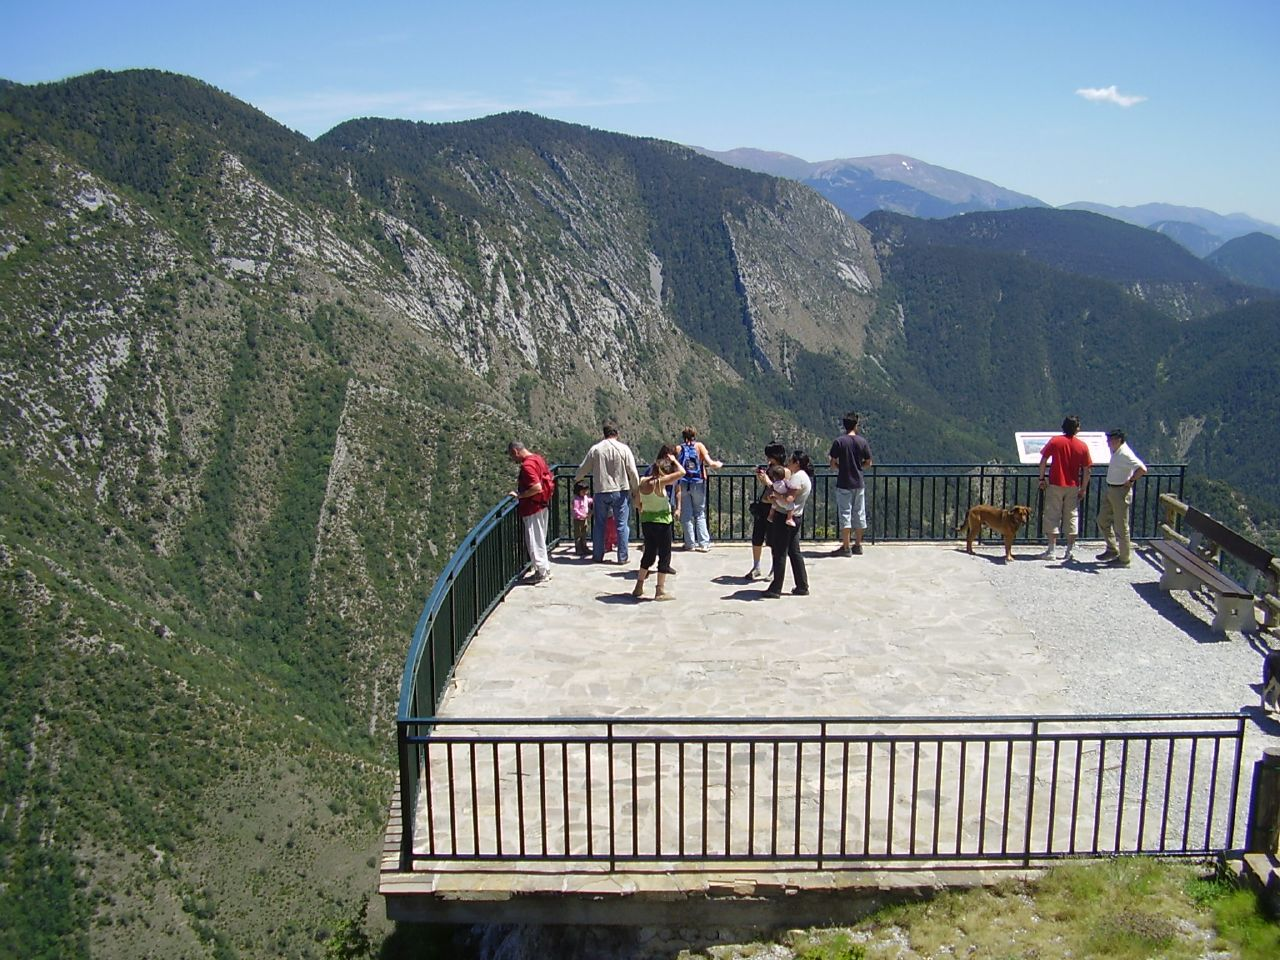 Mirador at Pedraforca Massif